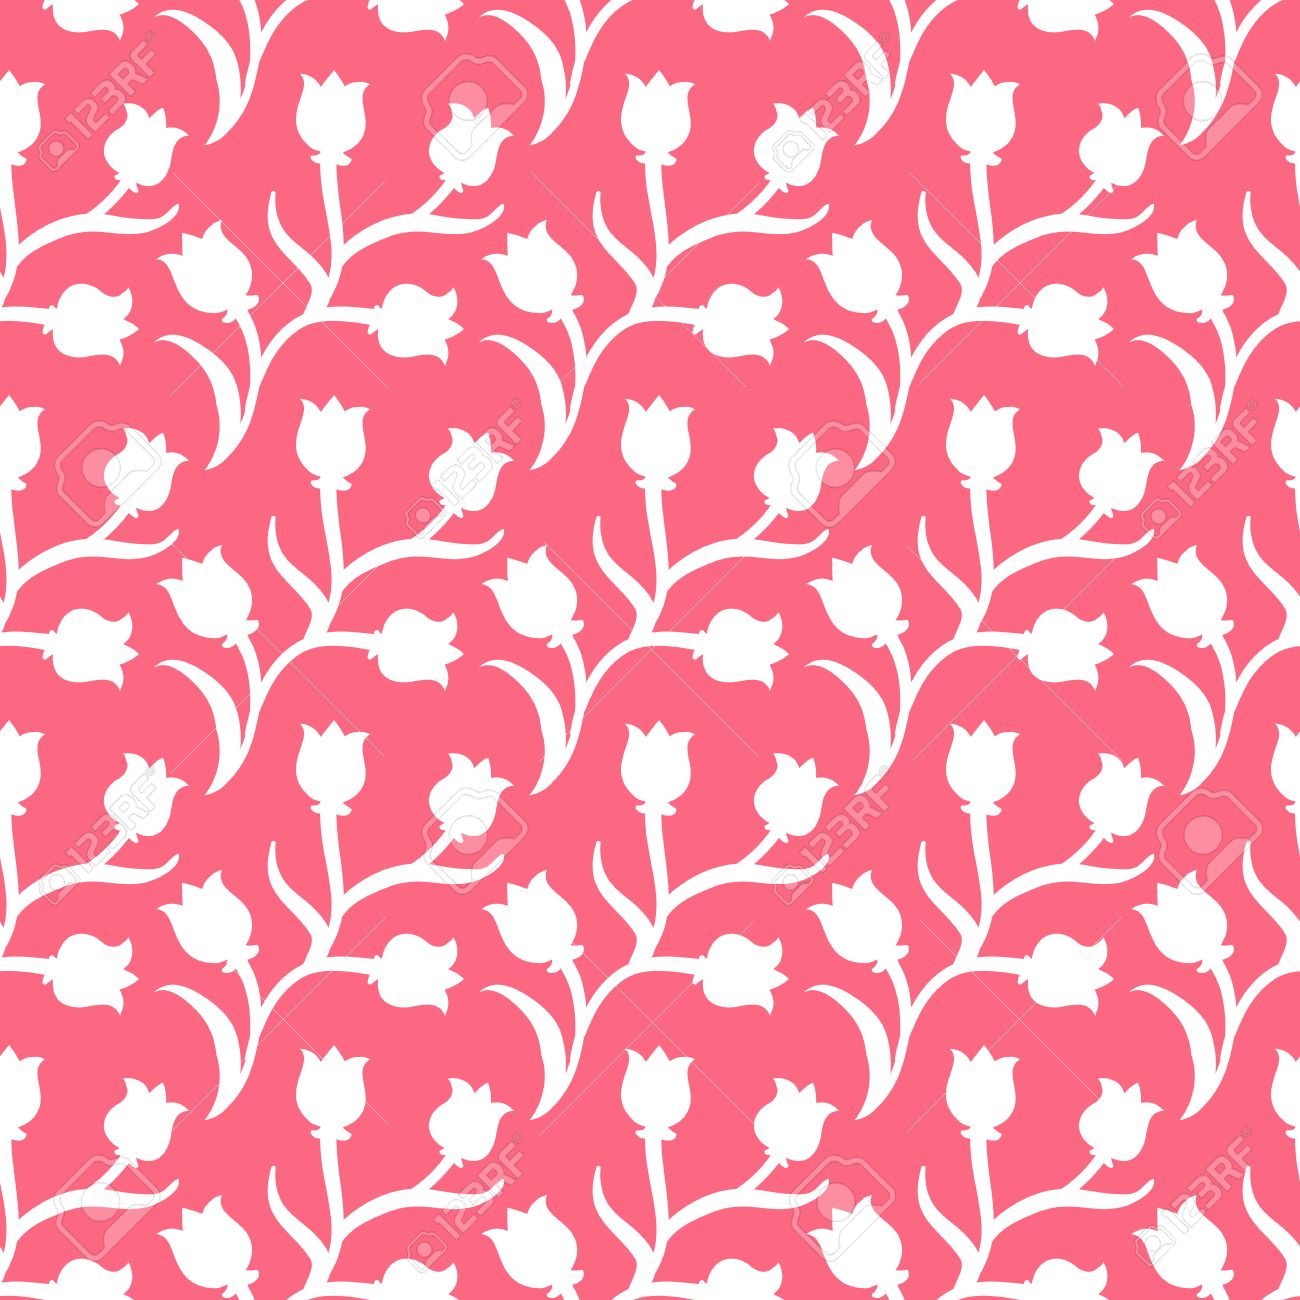 Ditsy Floral Pattern With Small White Tulips On Tropical Pink